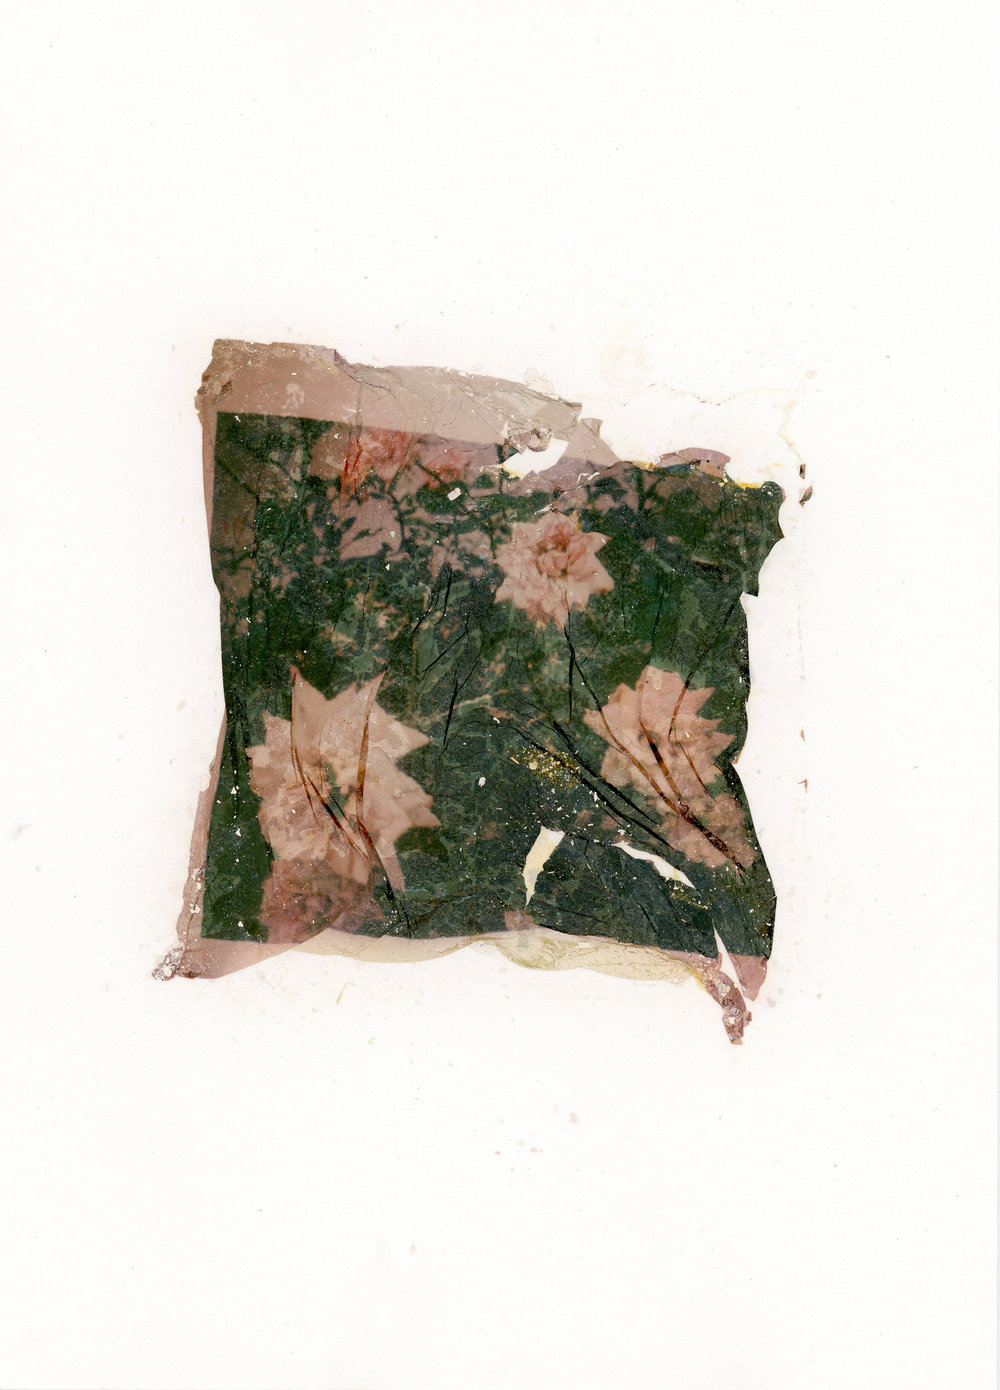 Physicality of photography - Philadelphia, PA    Polaroid 600, emulsion, Impossible lab exposure of digital image capture